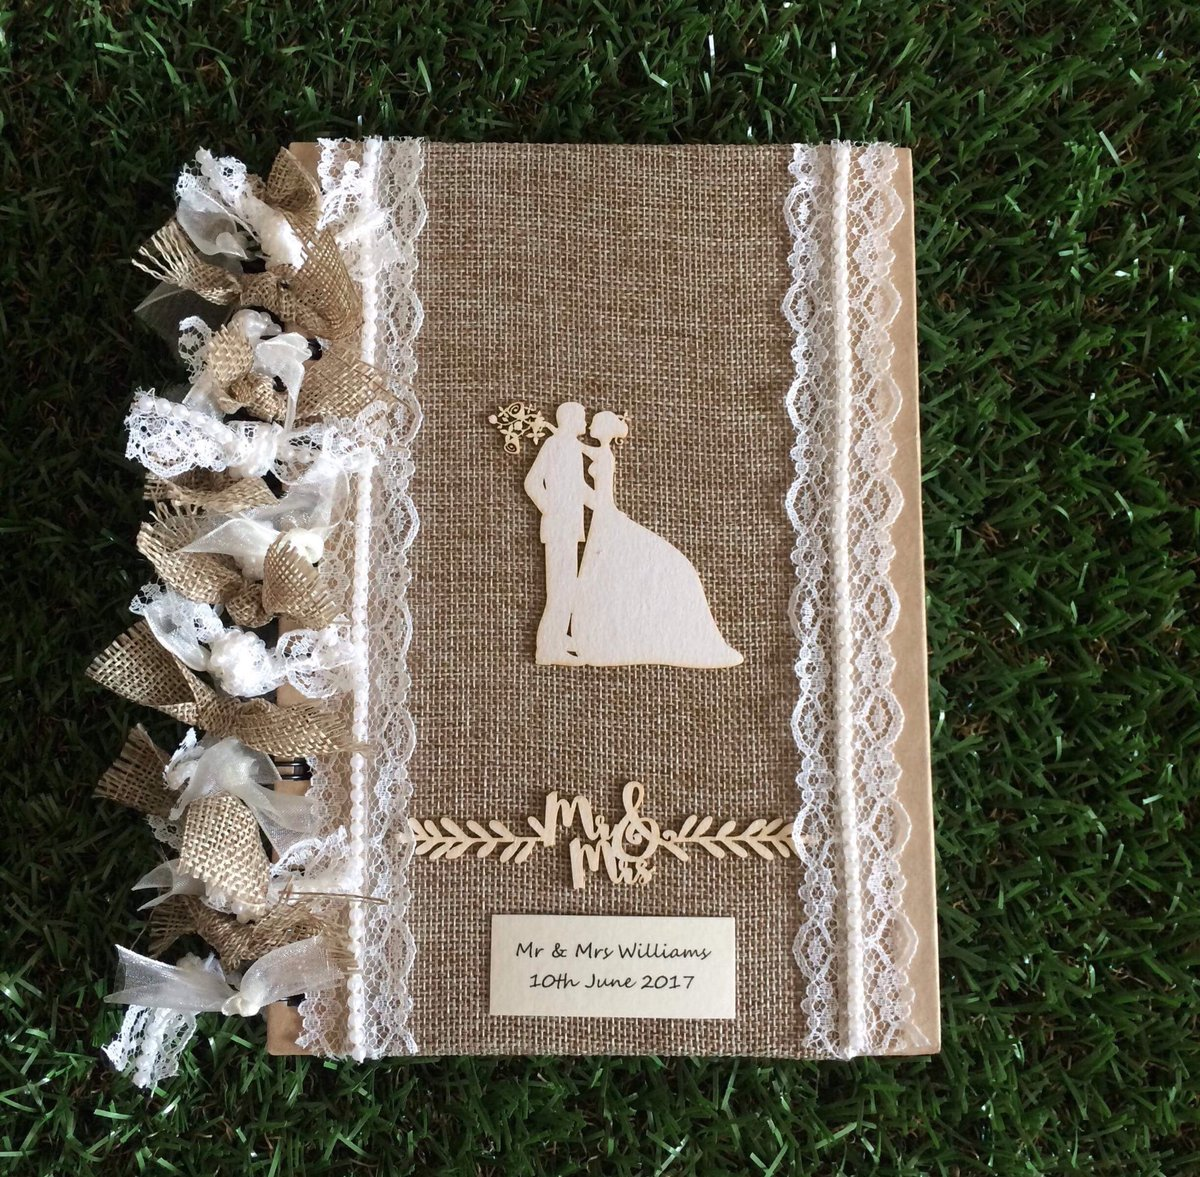 Excited to share this item from my #etsy shop: HANDCRAFTED rustic wedding planner book journal keepsake, notebook, burlap, lace & pearl decoration.  #planner #notebook #rustic #weddingideas  #weddingseason #weddingplans #weddinginspo  #mrandmrs #bridetobe